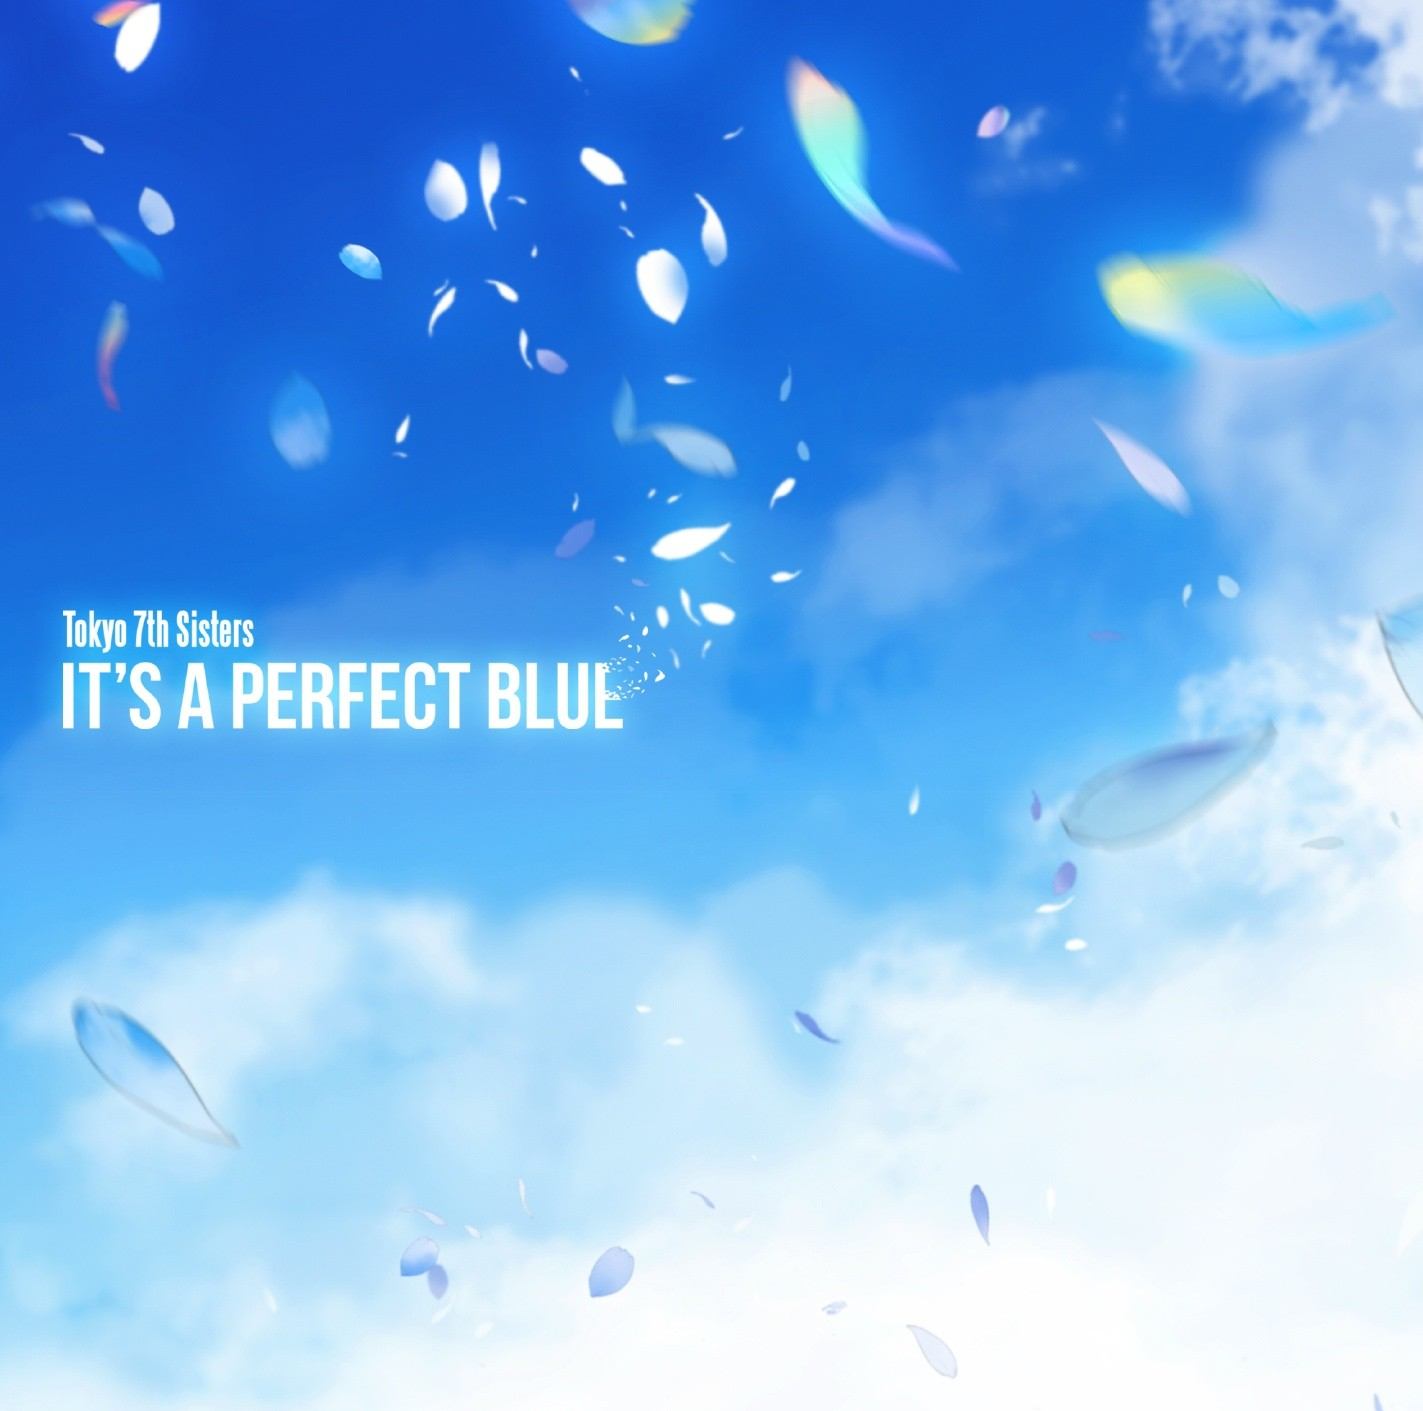 IT'S A PERFECT BLUE